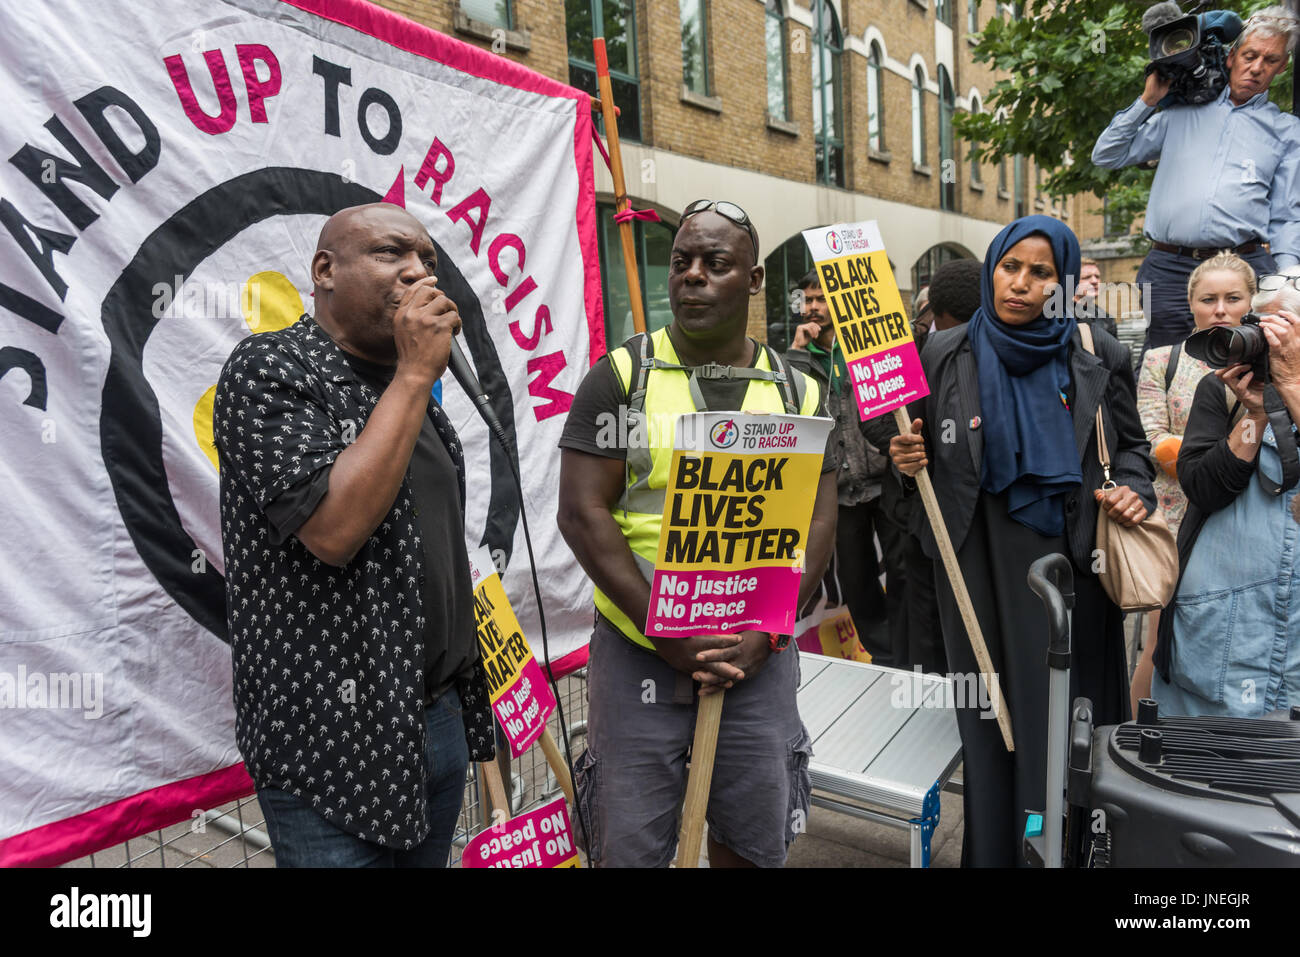 July 29, 2017 - London, UK - London, UK. 29th July 2017. Stand Up to Racism speaker at the protest at Stoke Newington - Stock Image